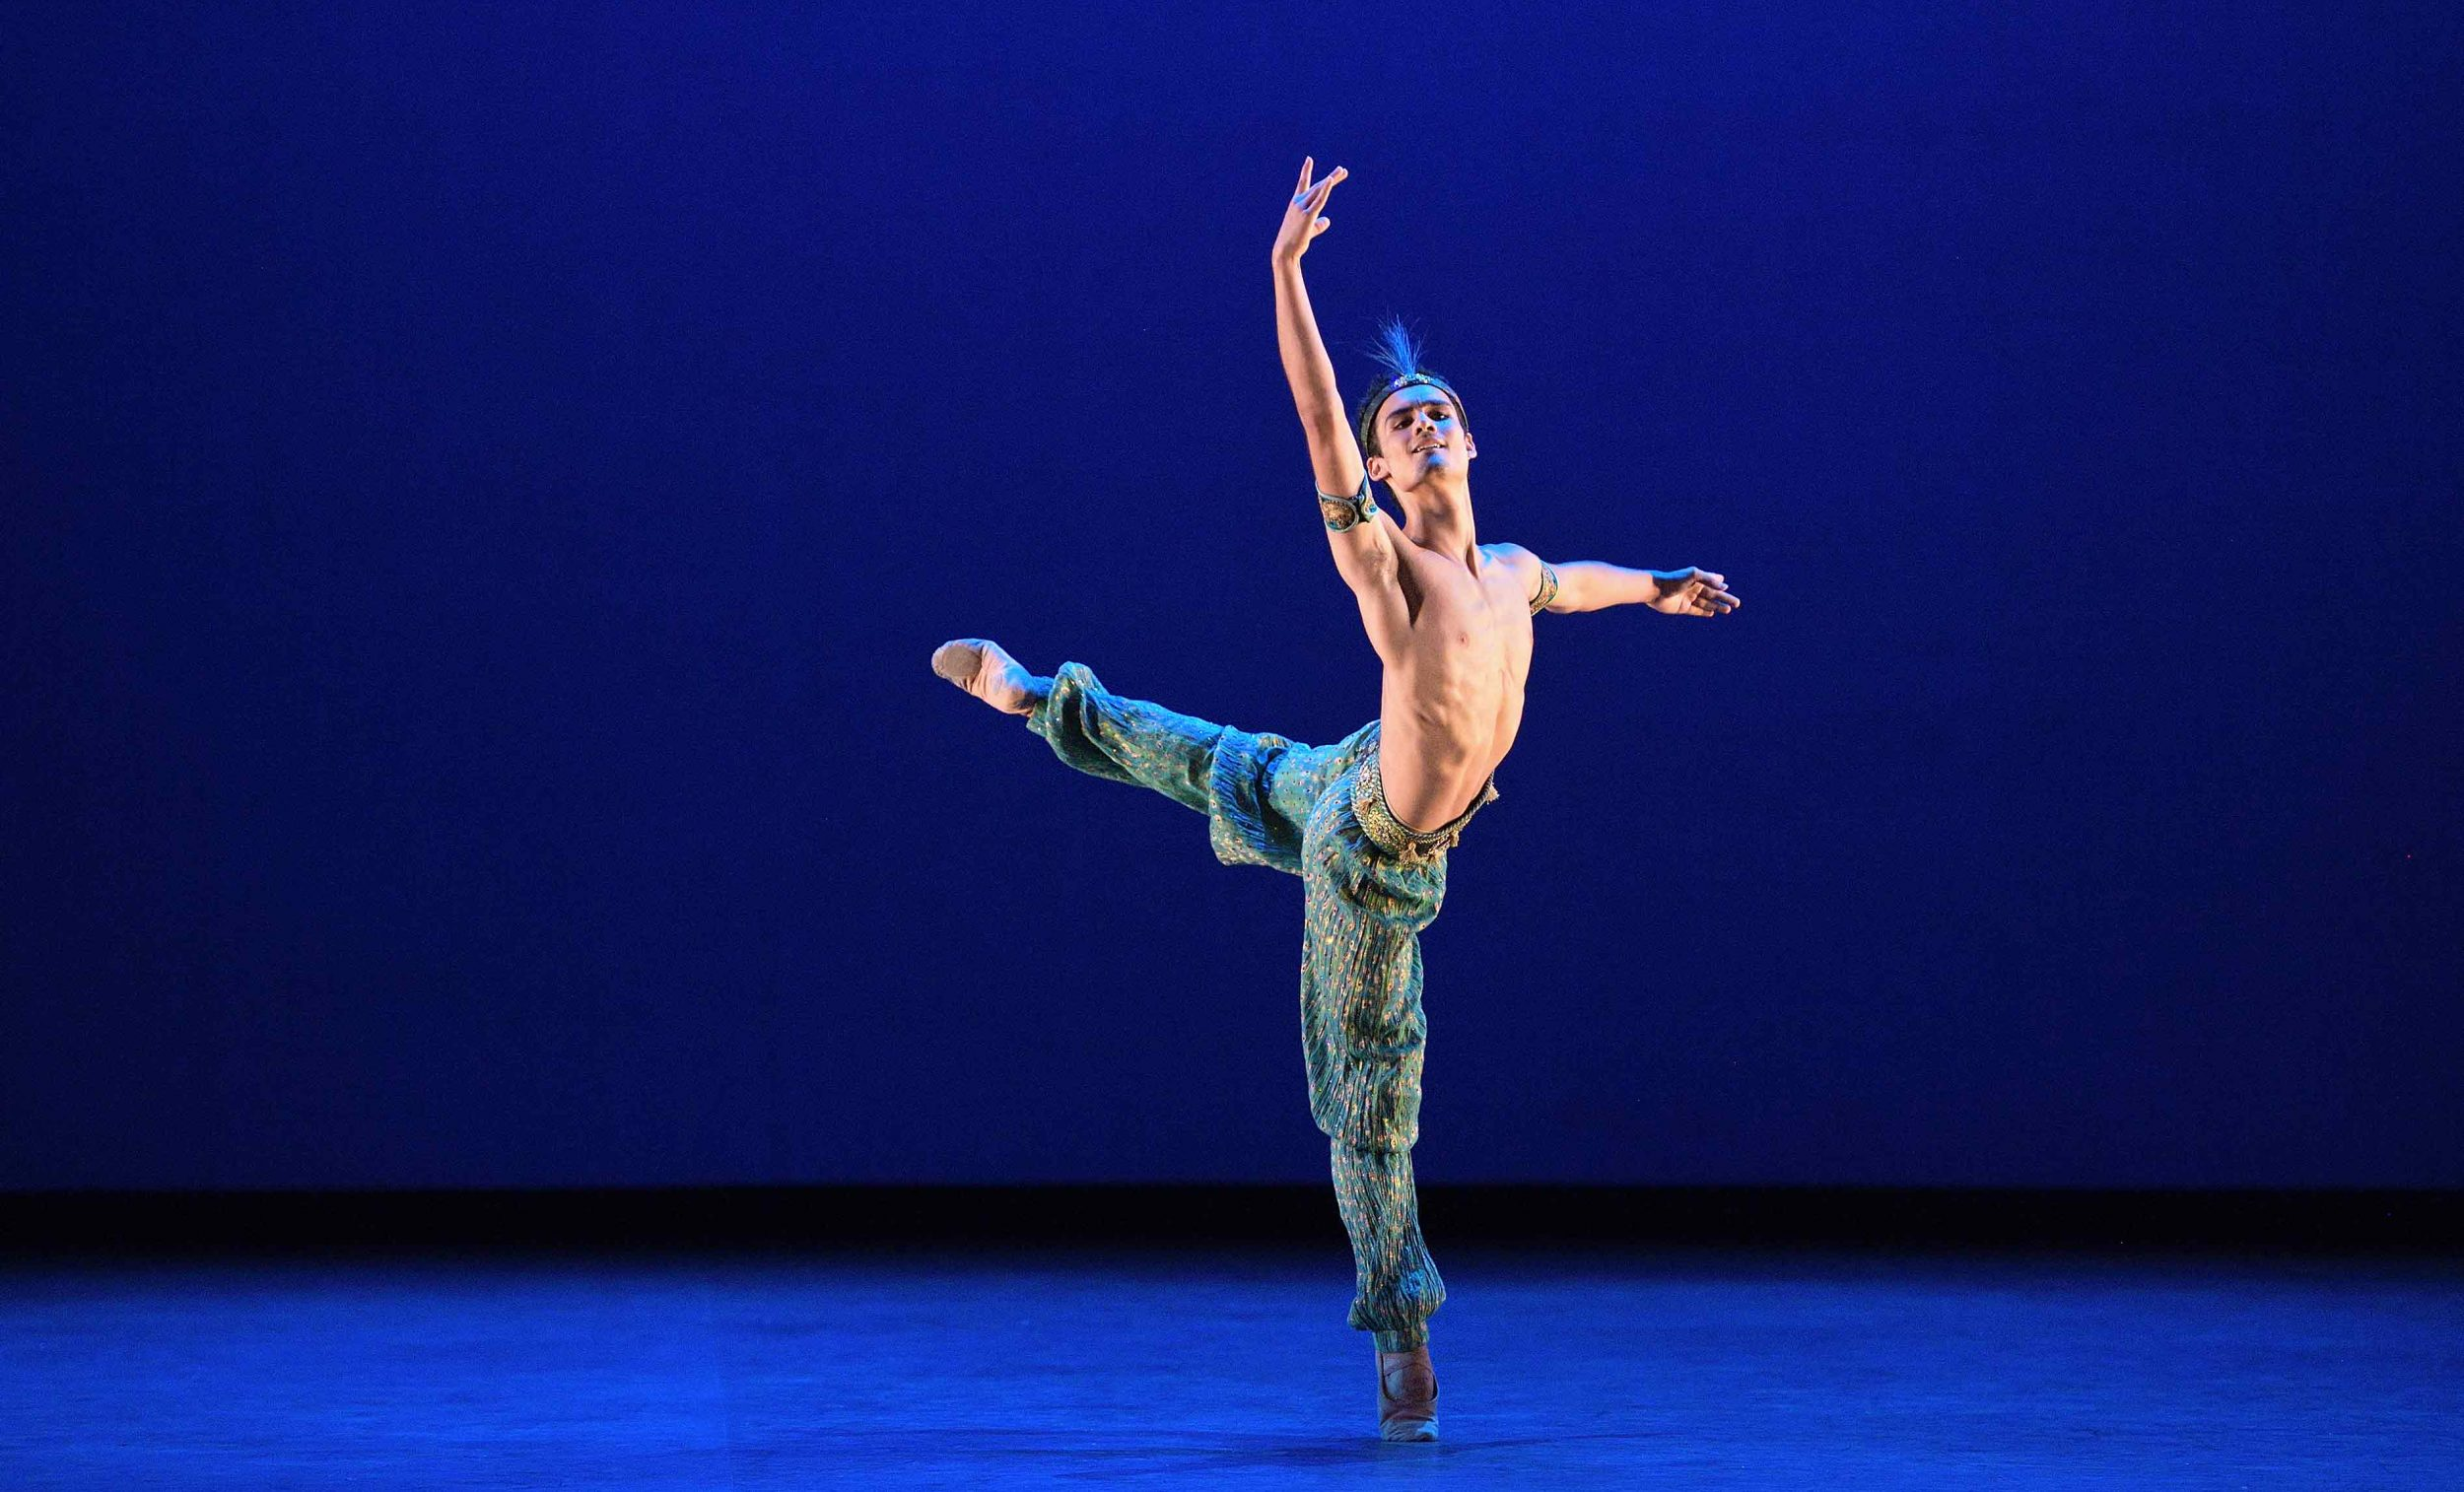 Daniel-McCormick-performing-Le-Corsaire-©-Laurent-Liotardo